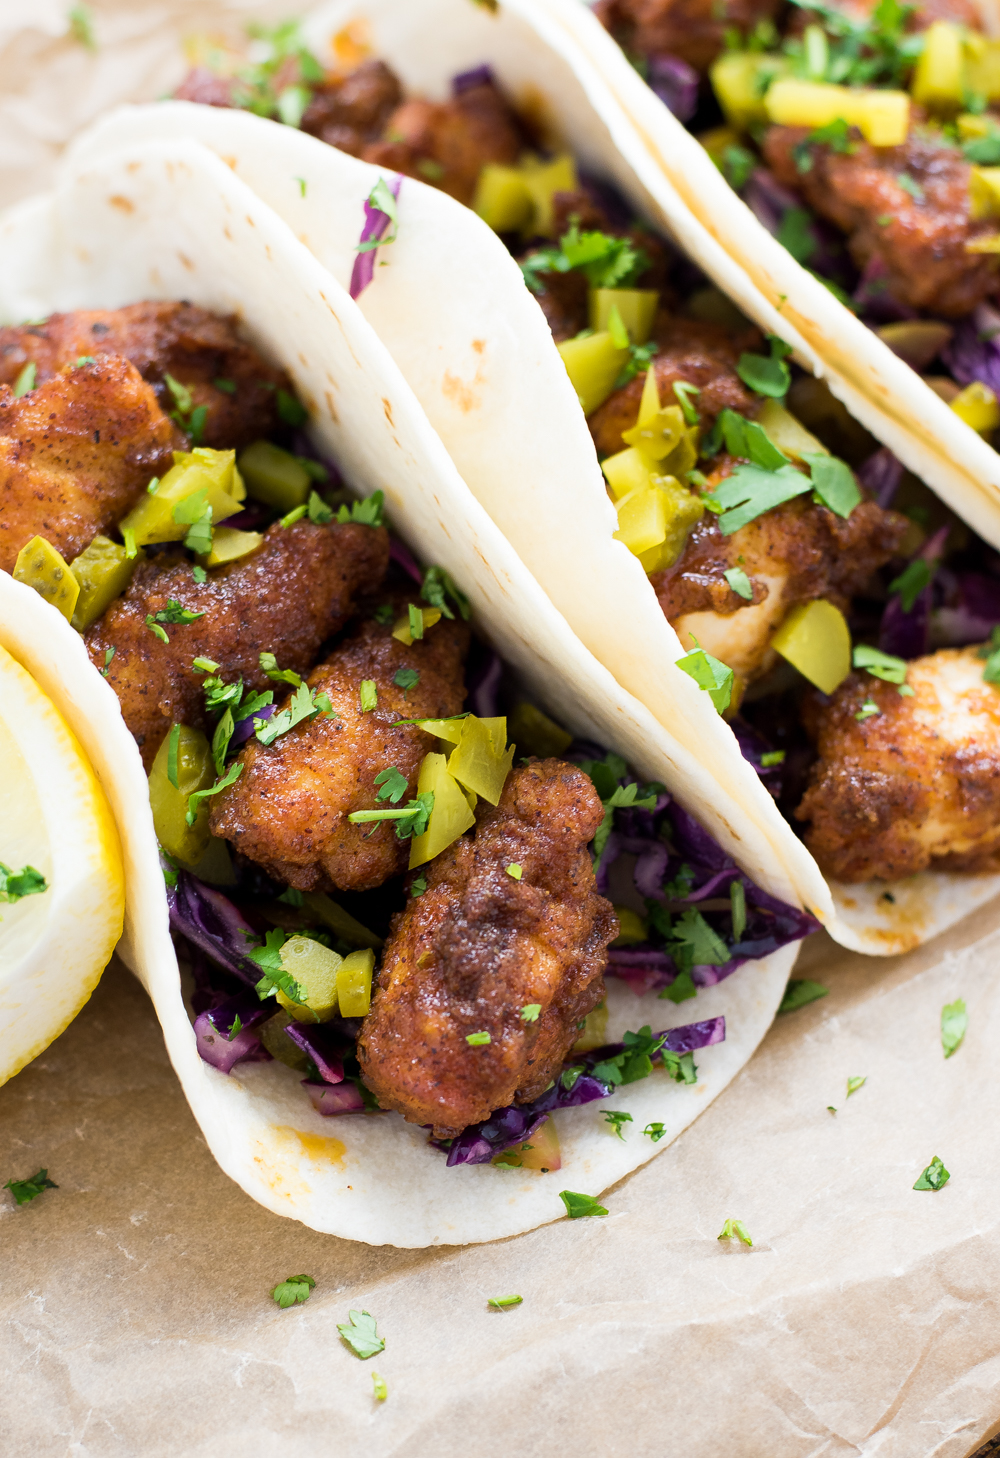 Nashville Hot Chicken Tacos with Dill Pickle Slaw are a fun twist on traditional Nashville Hot Chicken: a spicy, fried chicken dish!